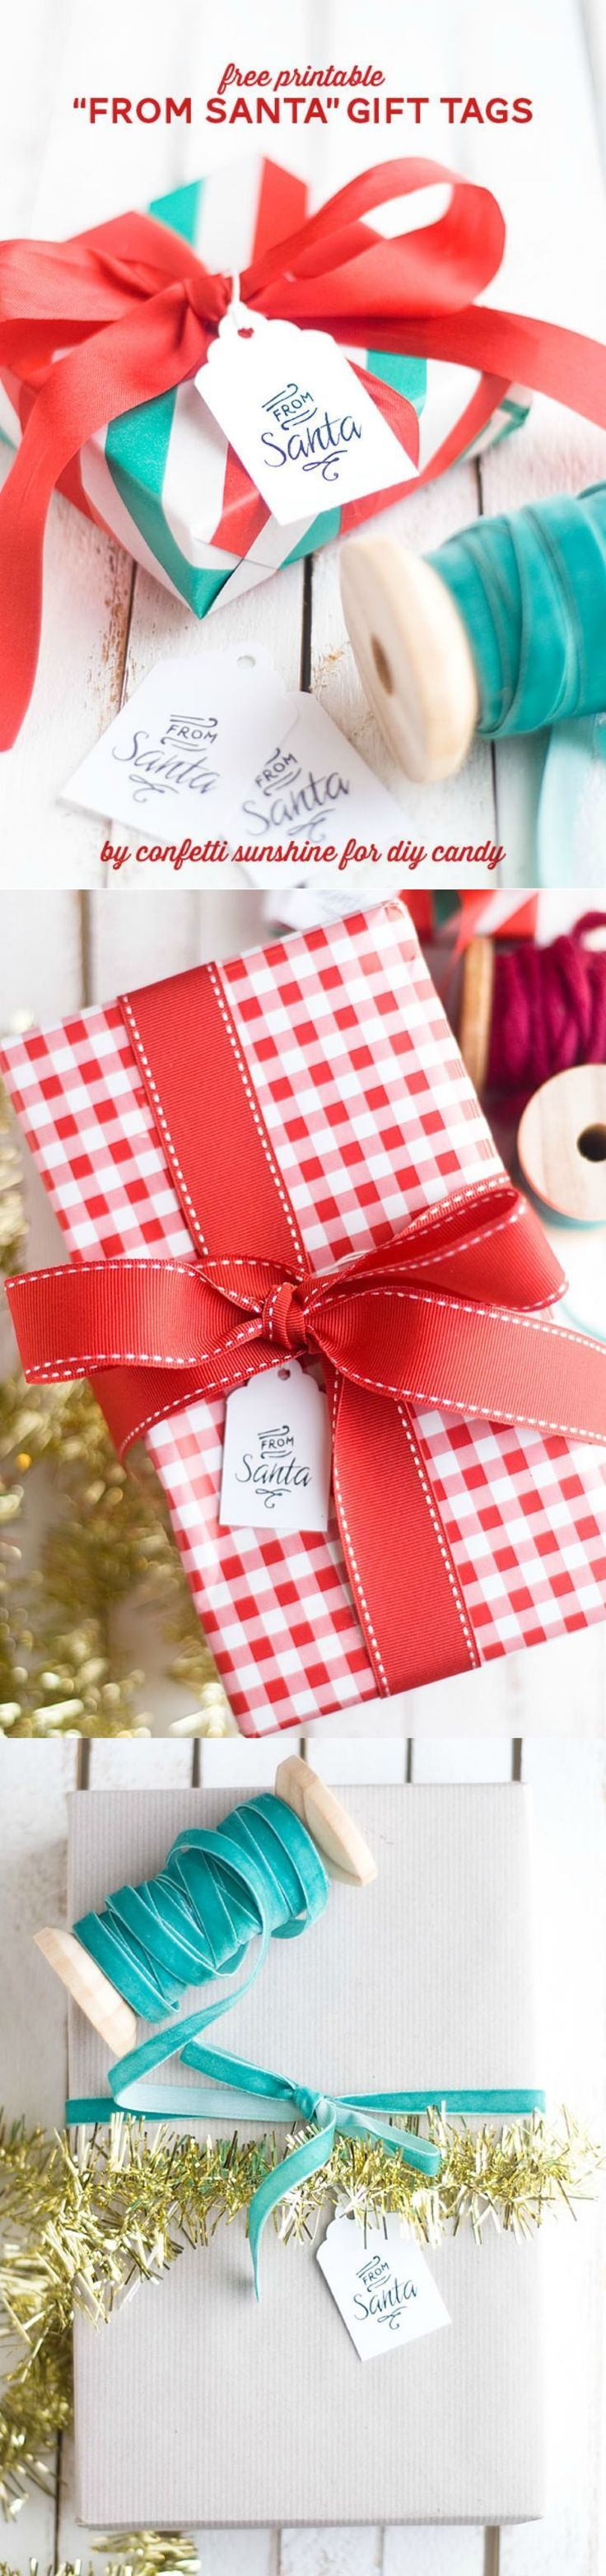 These cute printable gift tags that say